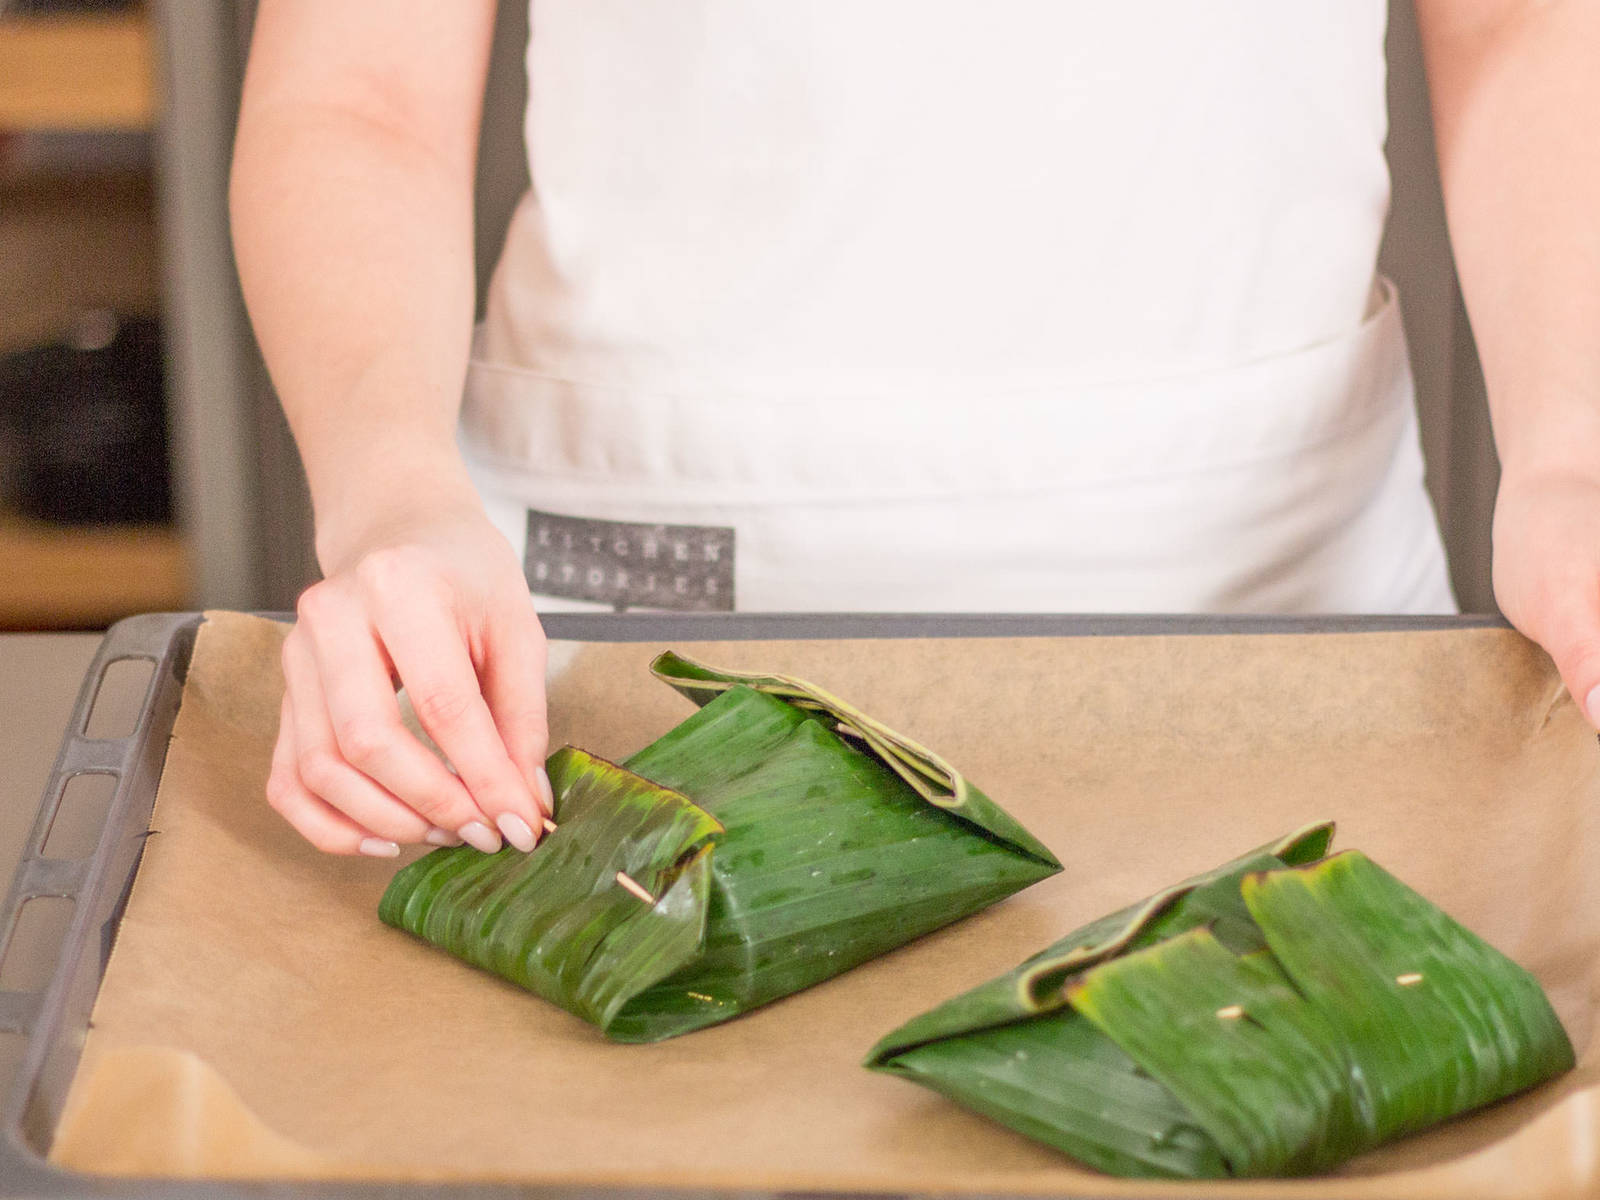 Fold banana leaves until all sides of cod fish are covered. Use toothpicks to secure the leaves. Bake in the oven at 180°C/350°F for approx. 30 min.